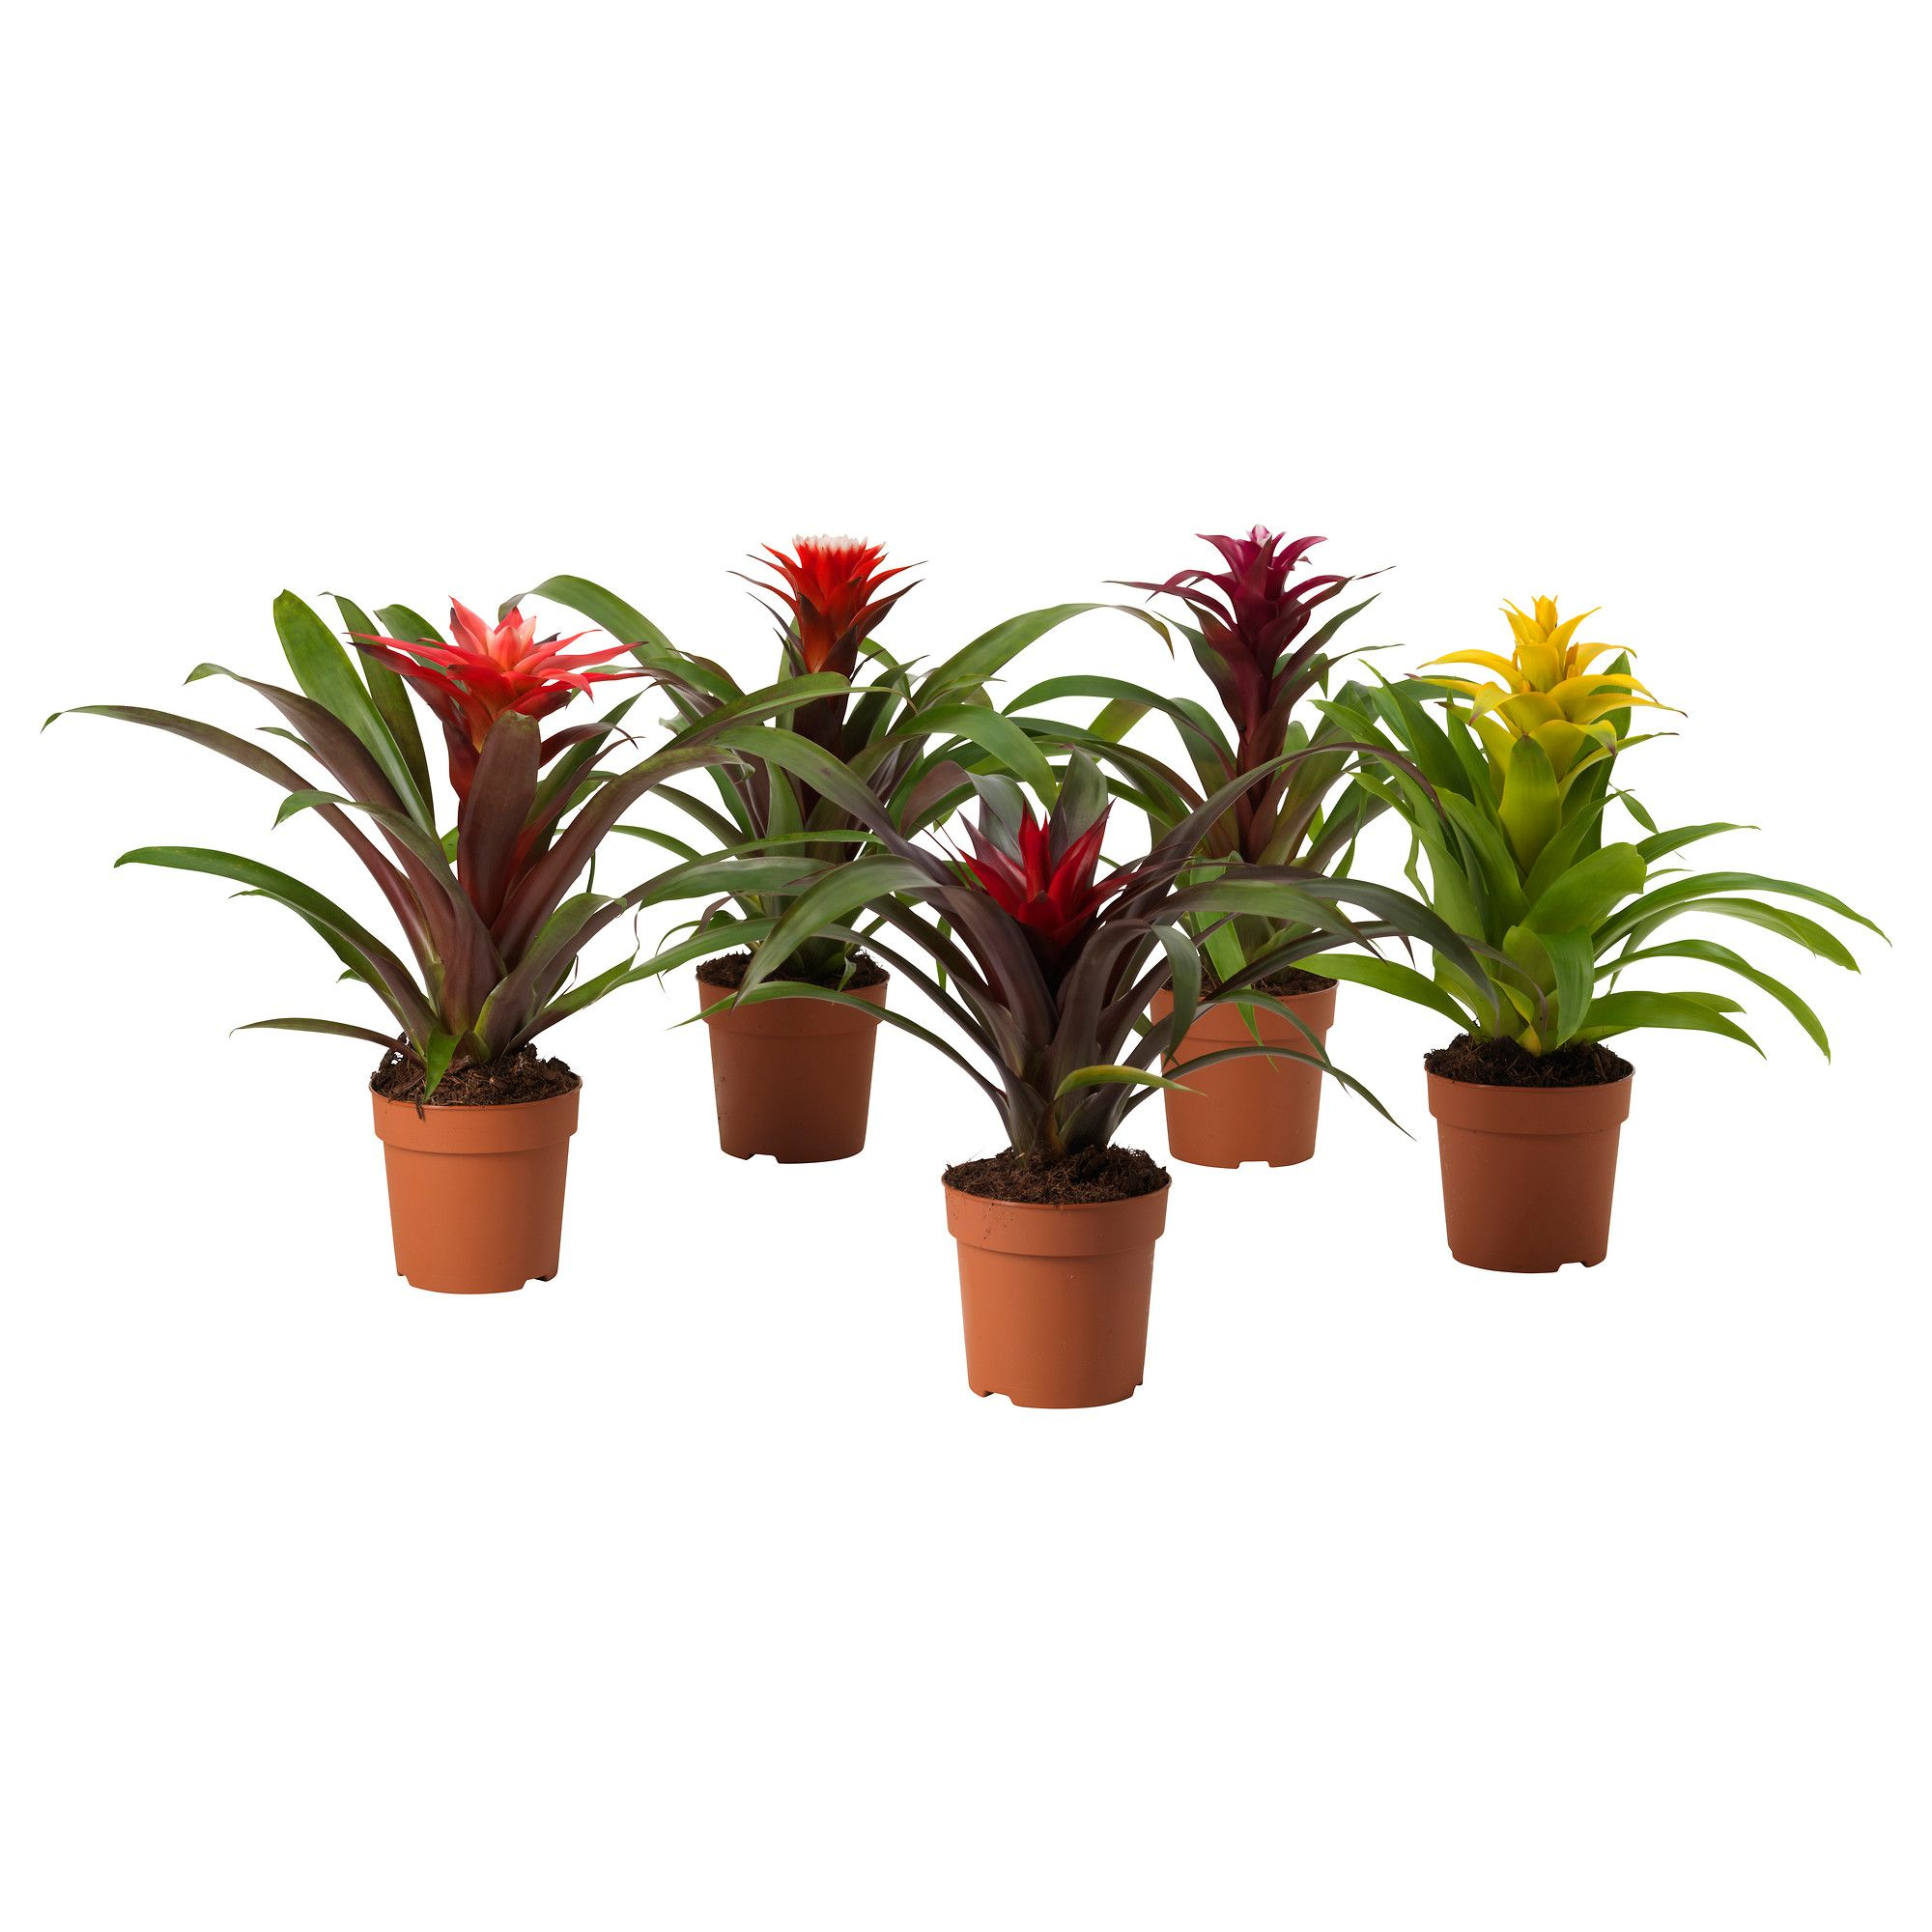 guzmania pflanze ikea flowers plants pinterest. Black Bedroom Furniture Sets. Home Design Ideas